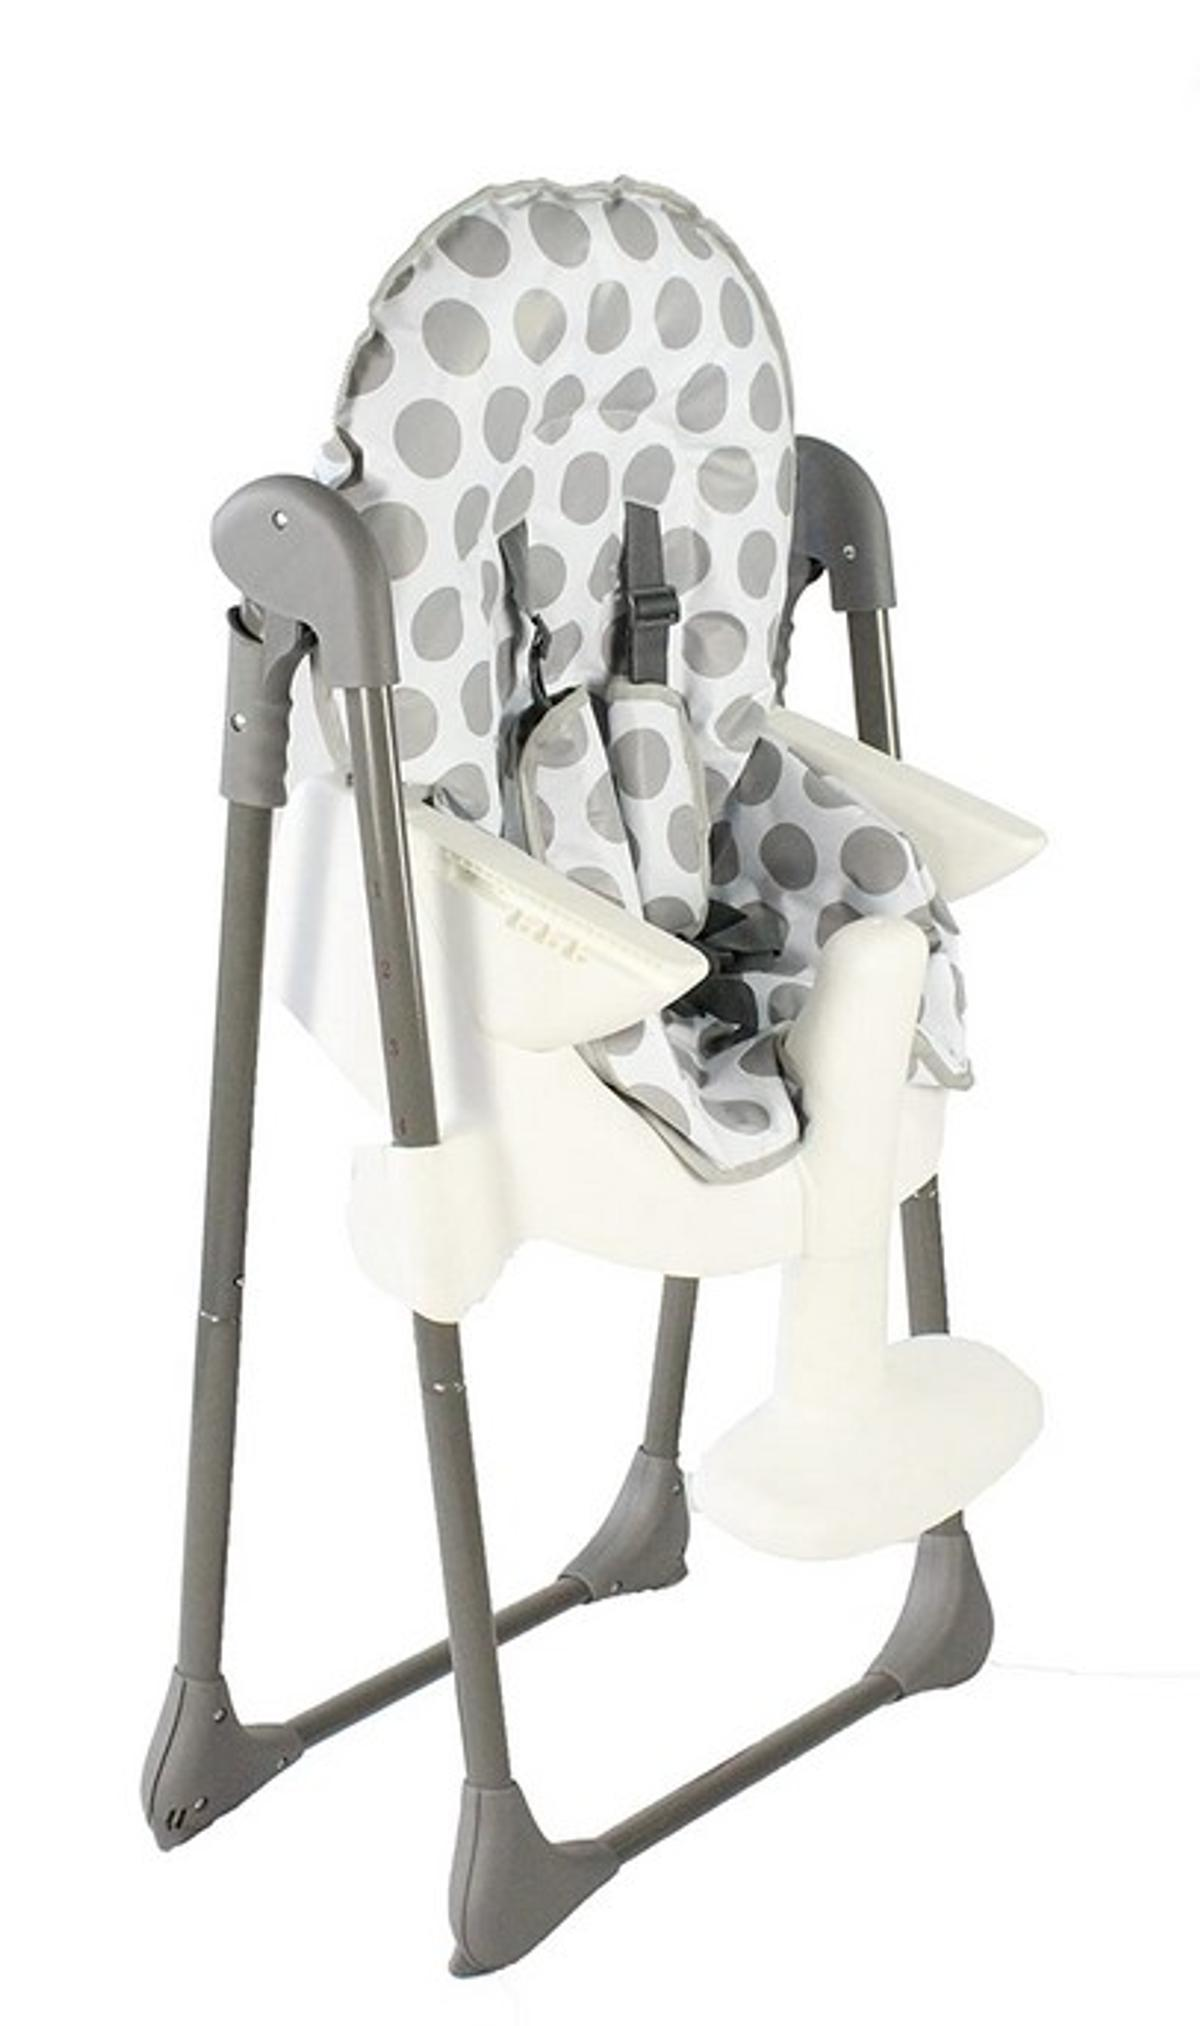 Baby High Chair for sale.  Red Kite brand, Feed Me Snak model.  Suitable for children from 6 months up to 15kg in weight.  Multi position height and adjustable seat.  Removable insert tray.  Padded protectors on harness.  Compact fold for simple storage.  Size H114, W56, D87cm.  Used but in great condition.  Thoroughly cleaned.  S/f home with two cats.  Social distancing observed. Collection only from doorstep, Burgess Hill.  Cash payment in envelope placed through letterbox.  On other sites.